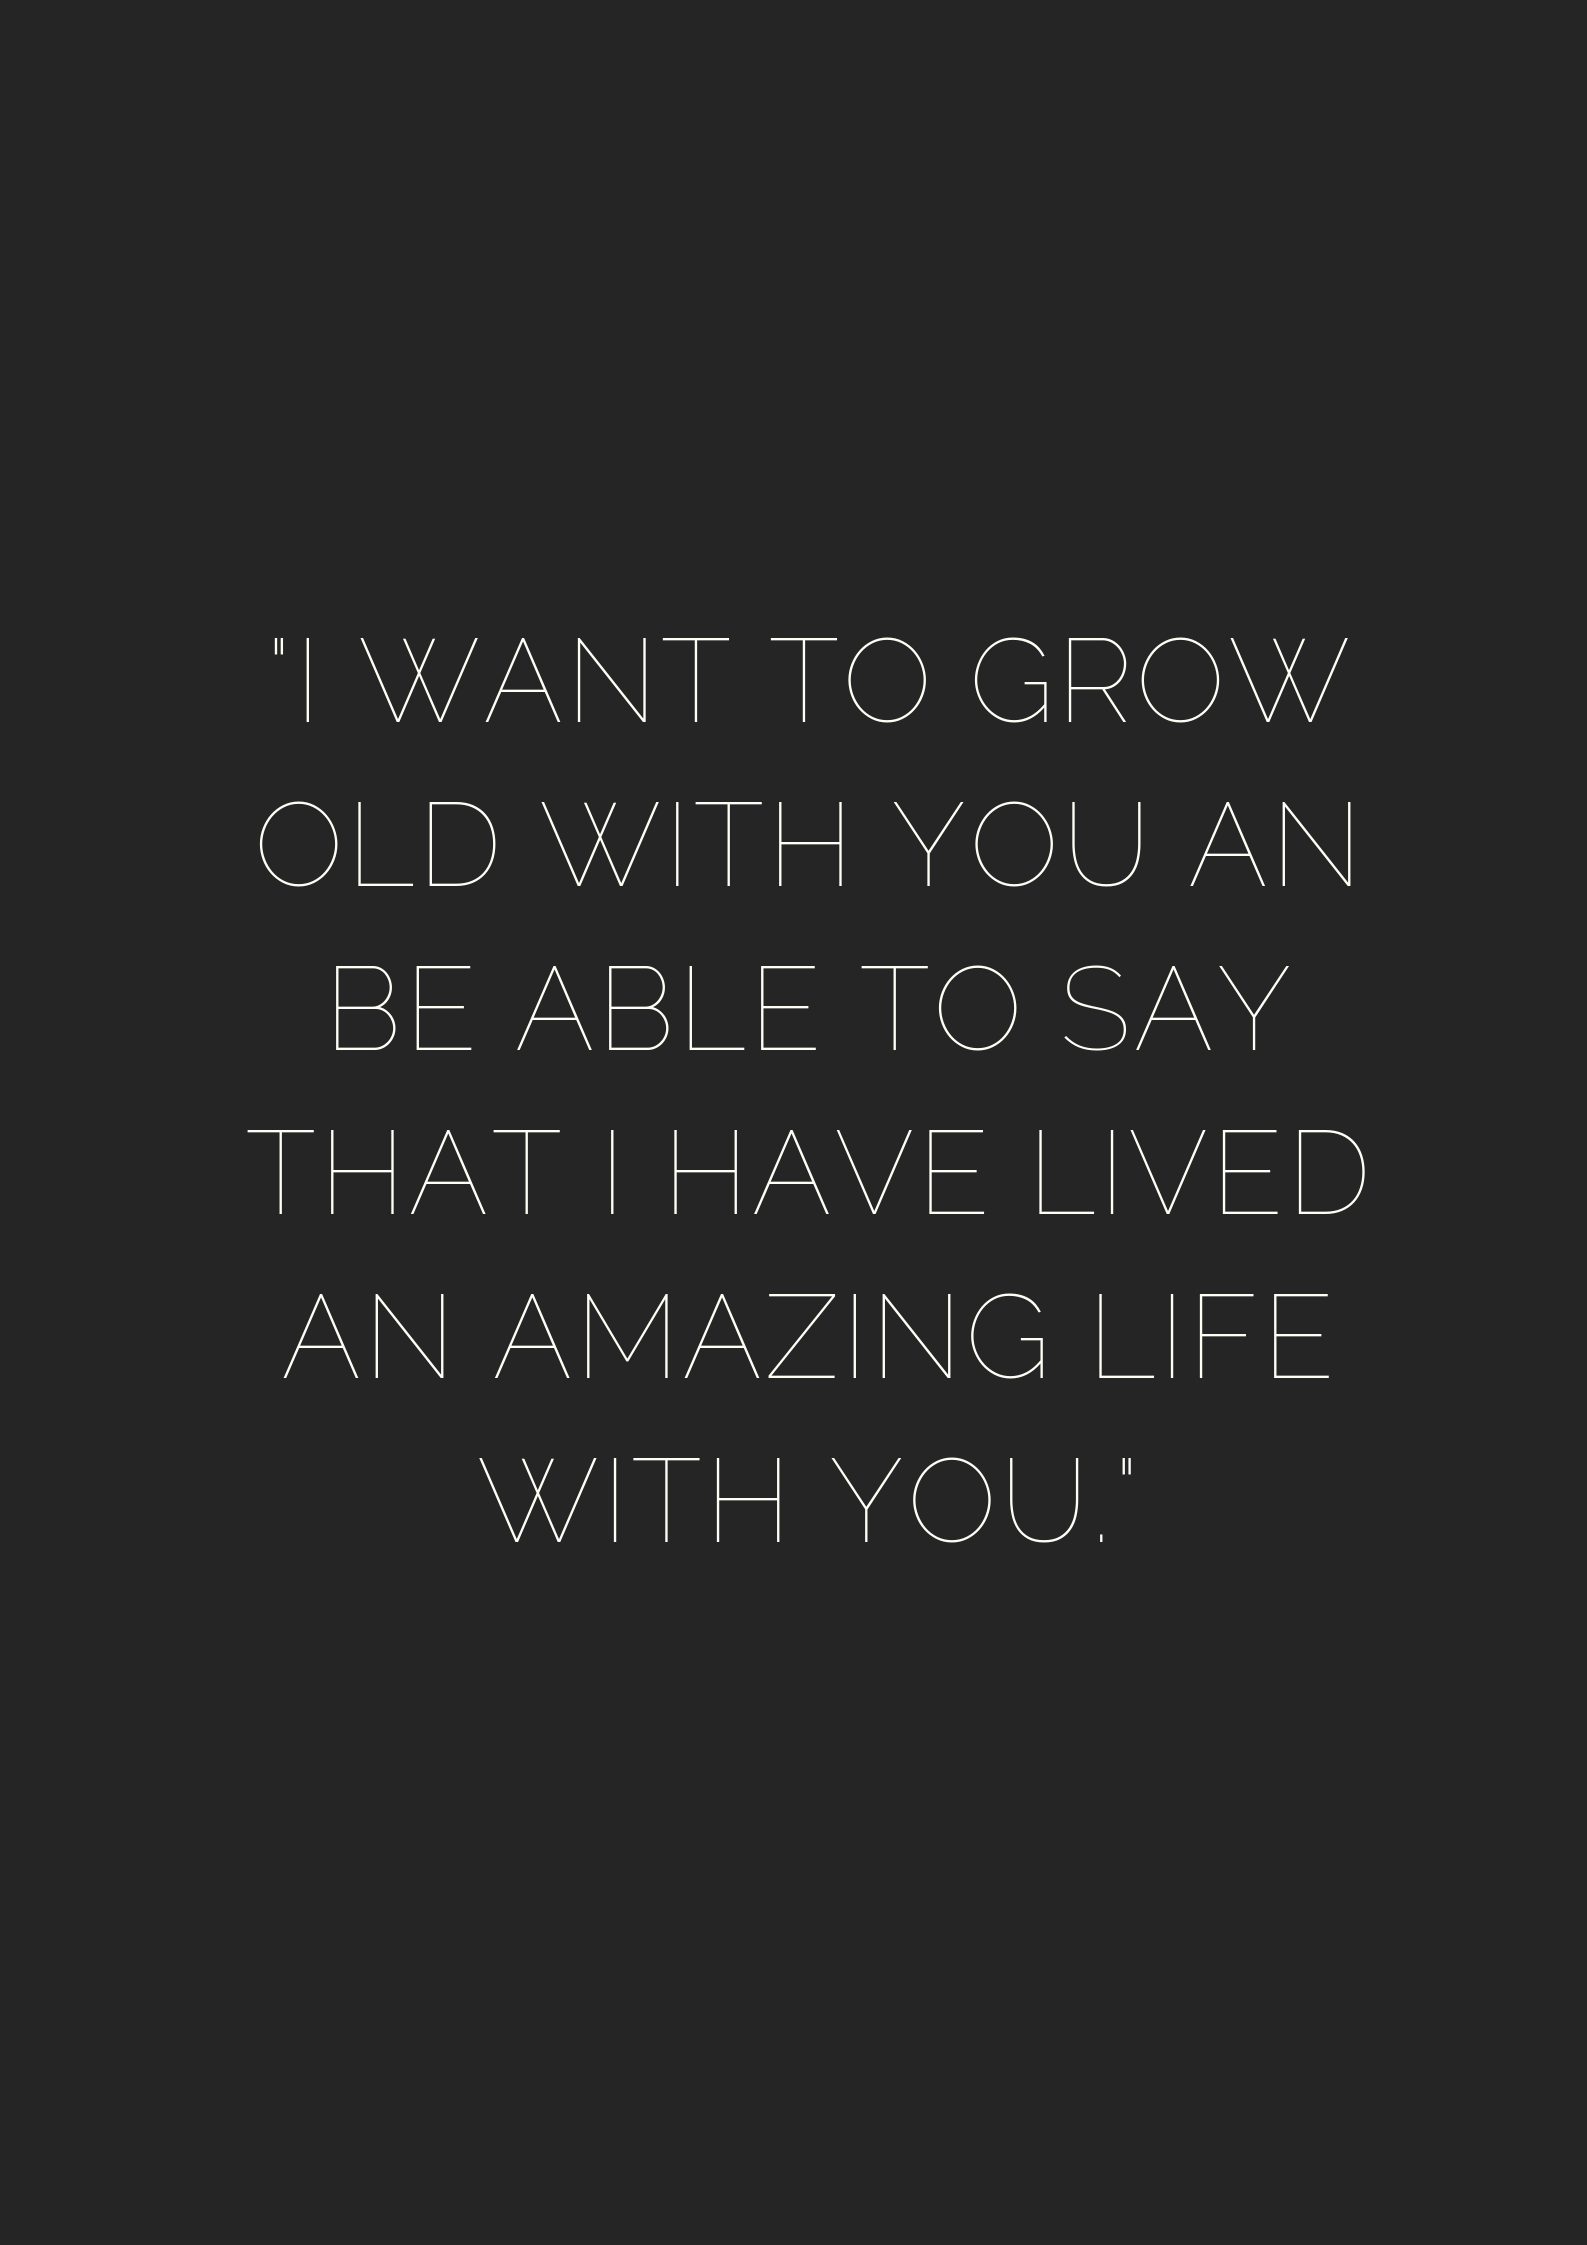 160 Quirky Love Quotes Museuly Sweet Couple Quotes Lost Myself Quotes Relatable Quotes